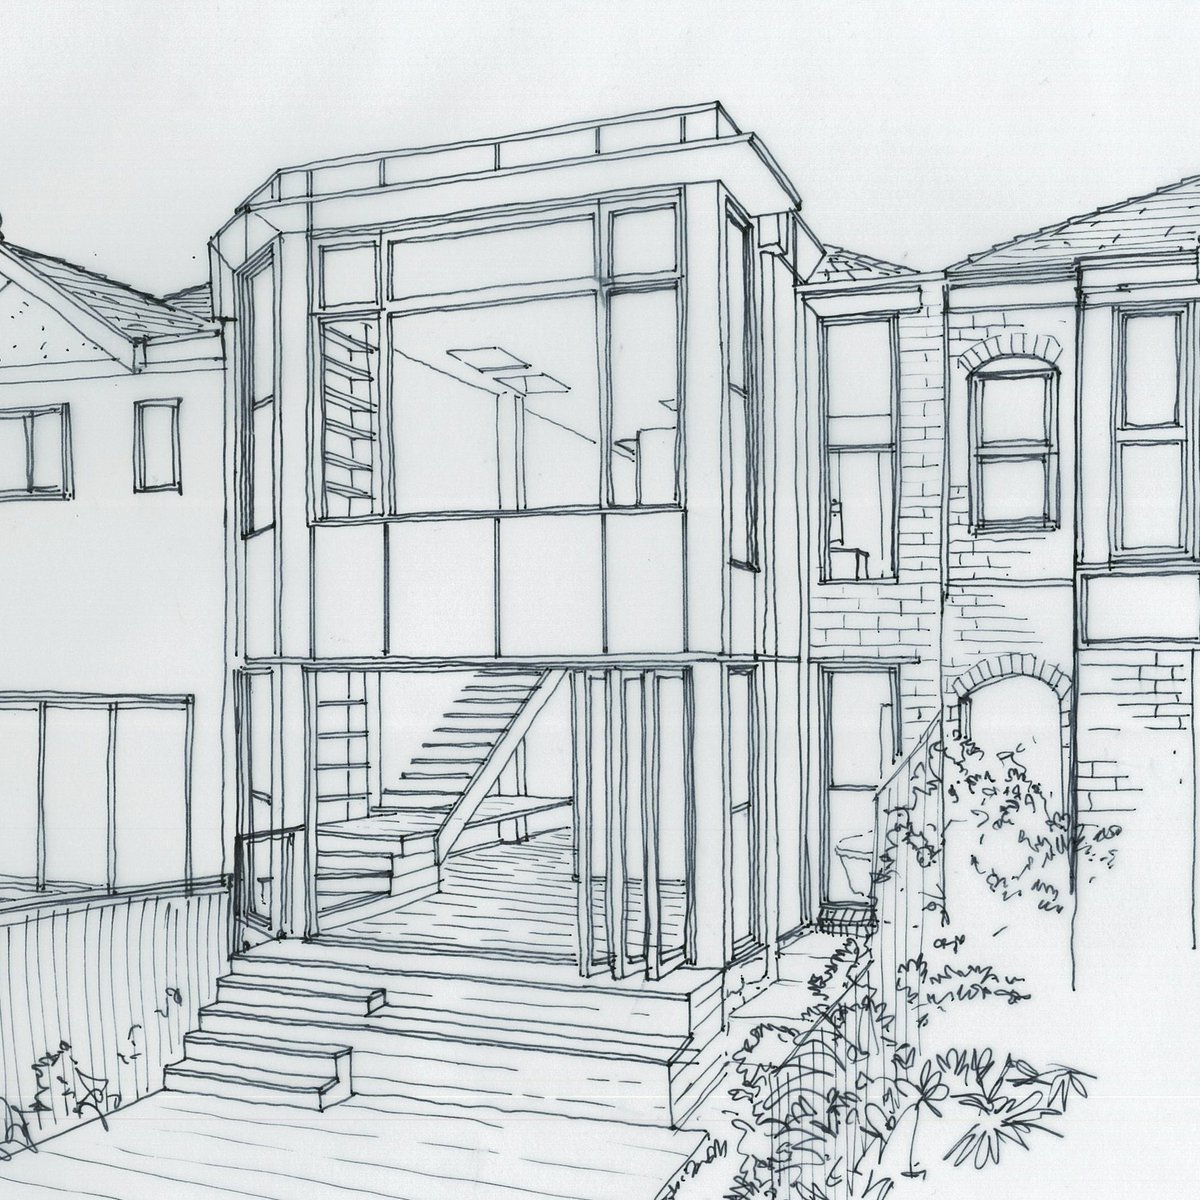 Melonie Bayl Smith On Twitter Hand Sketch Of A Two Storey Semi In